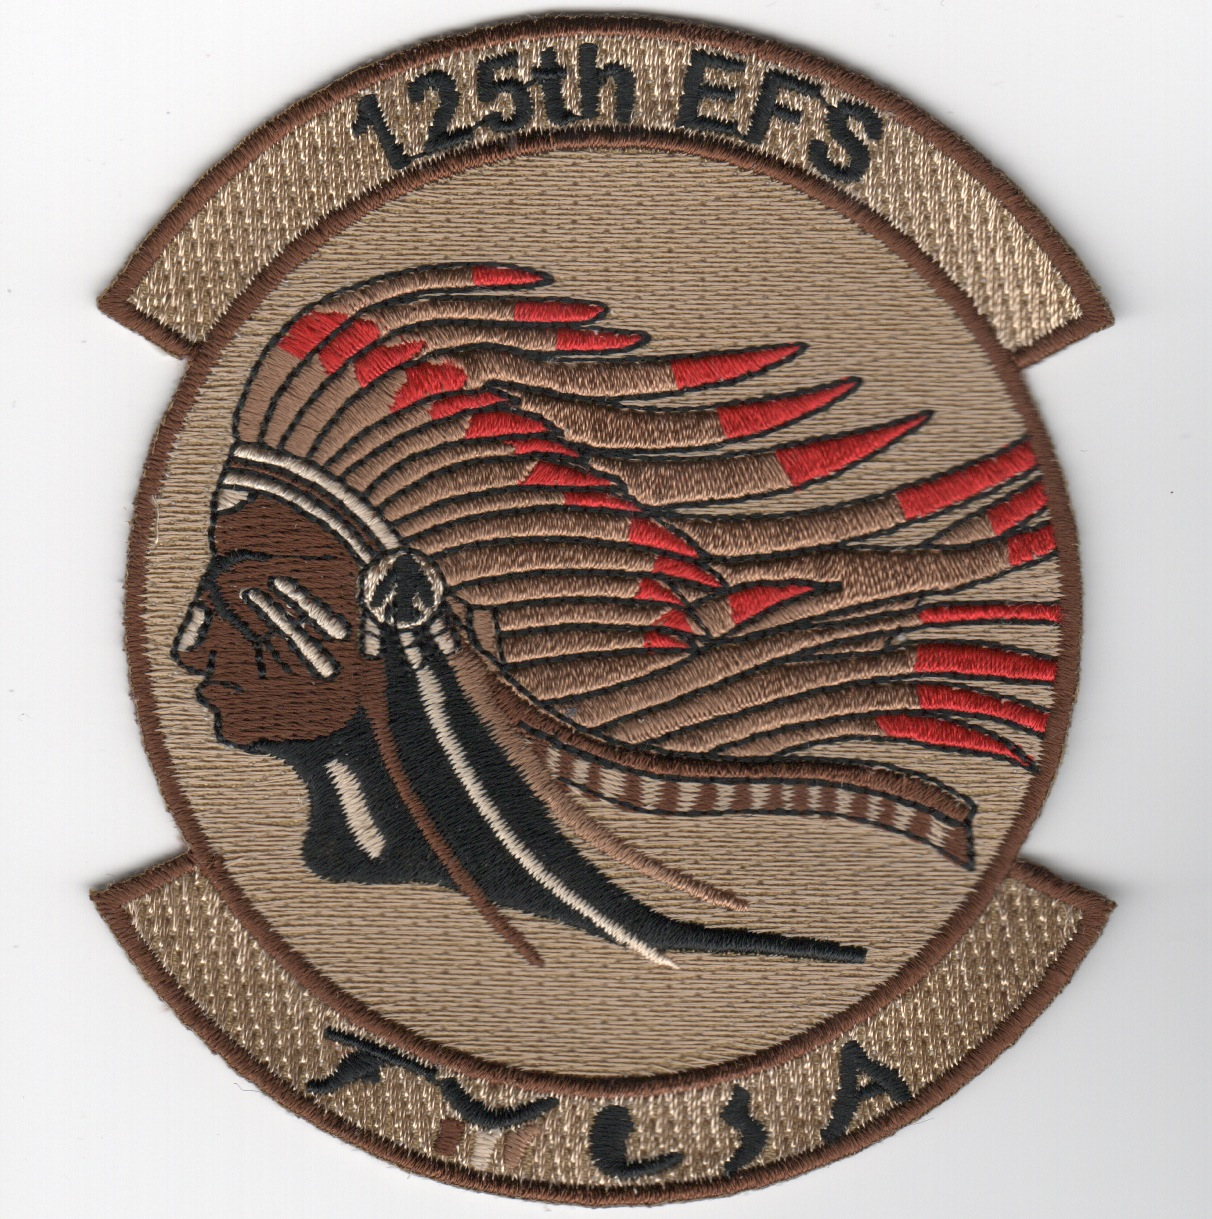 125EFS 'Indian Head' Det Patch (Des)